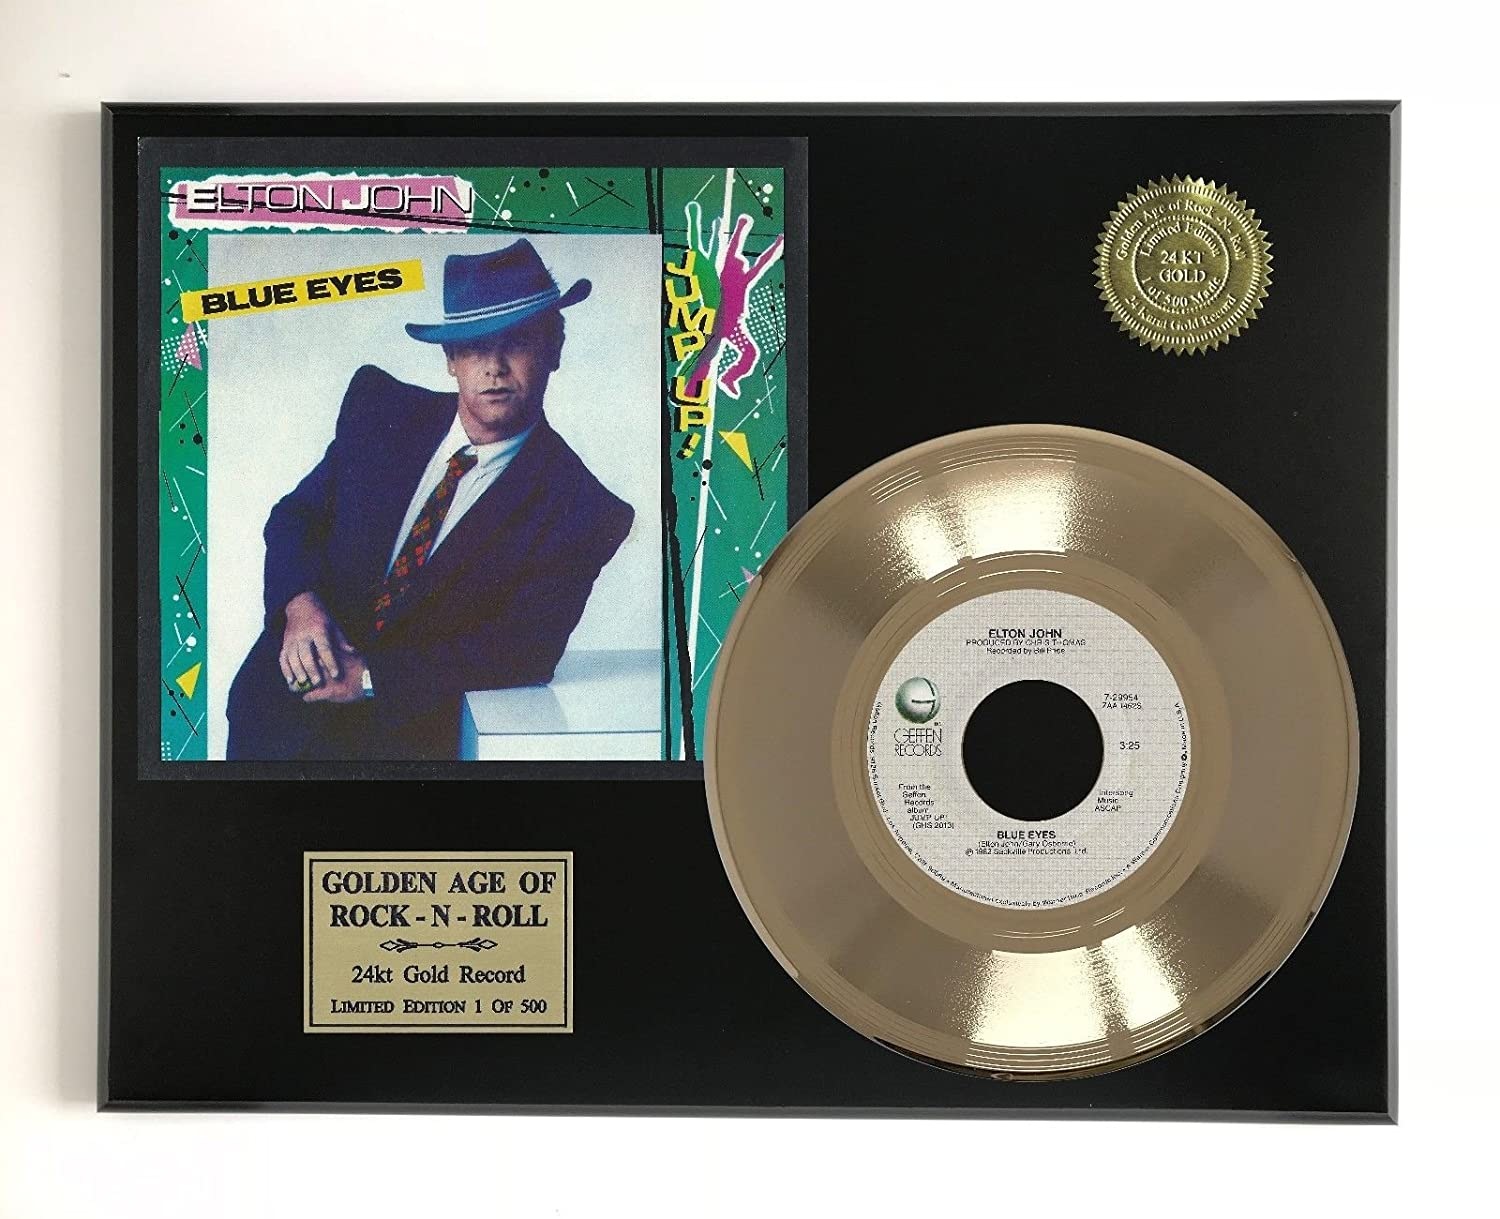 Elton John - Blue Eyes Ltd Edition Gold 45 Record Display M4